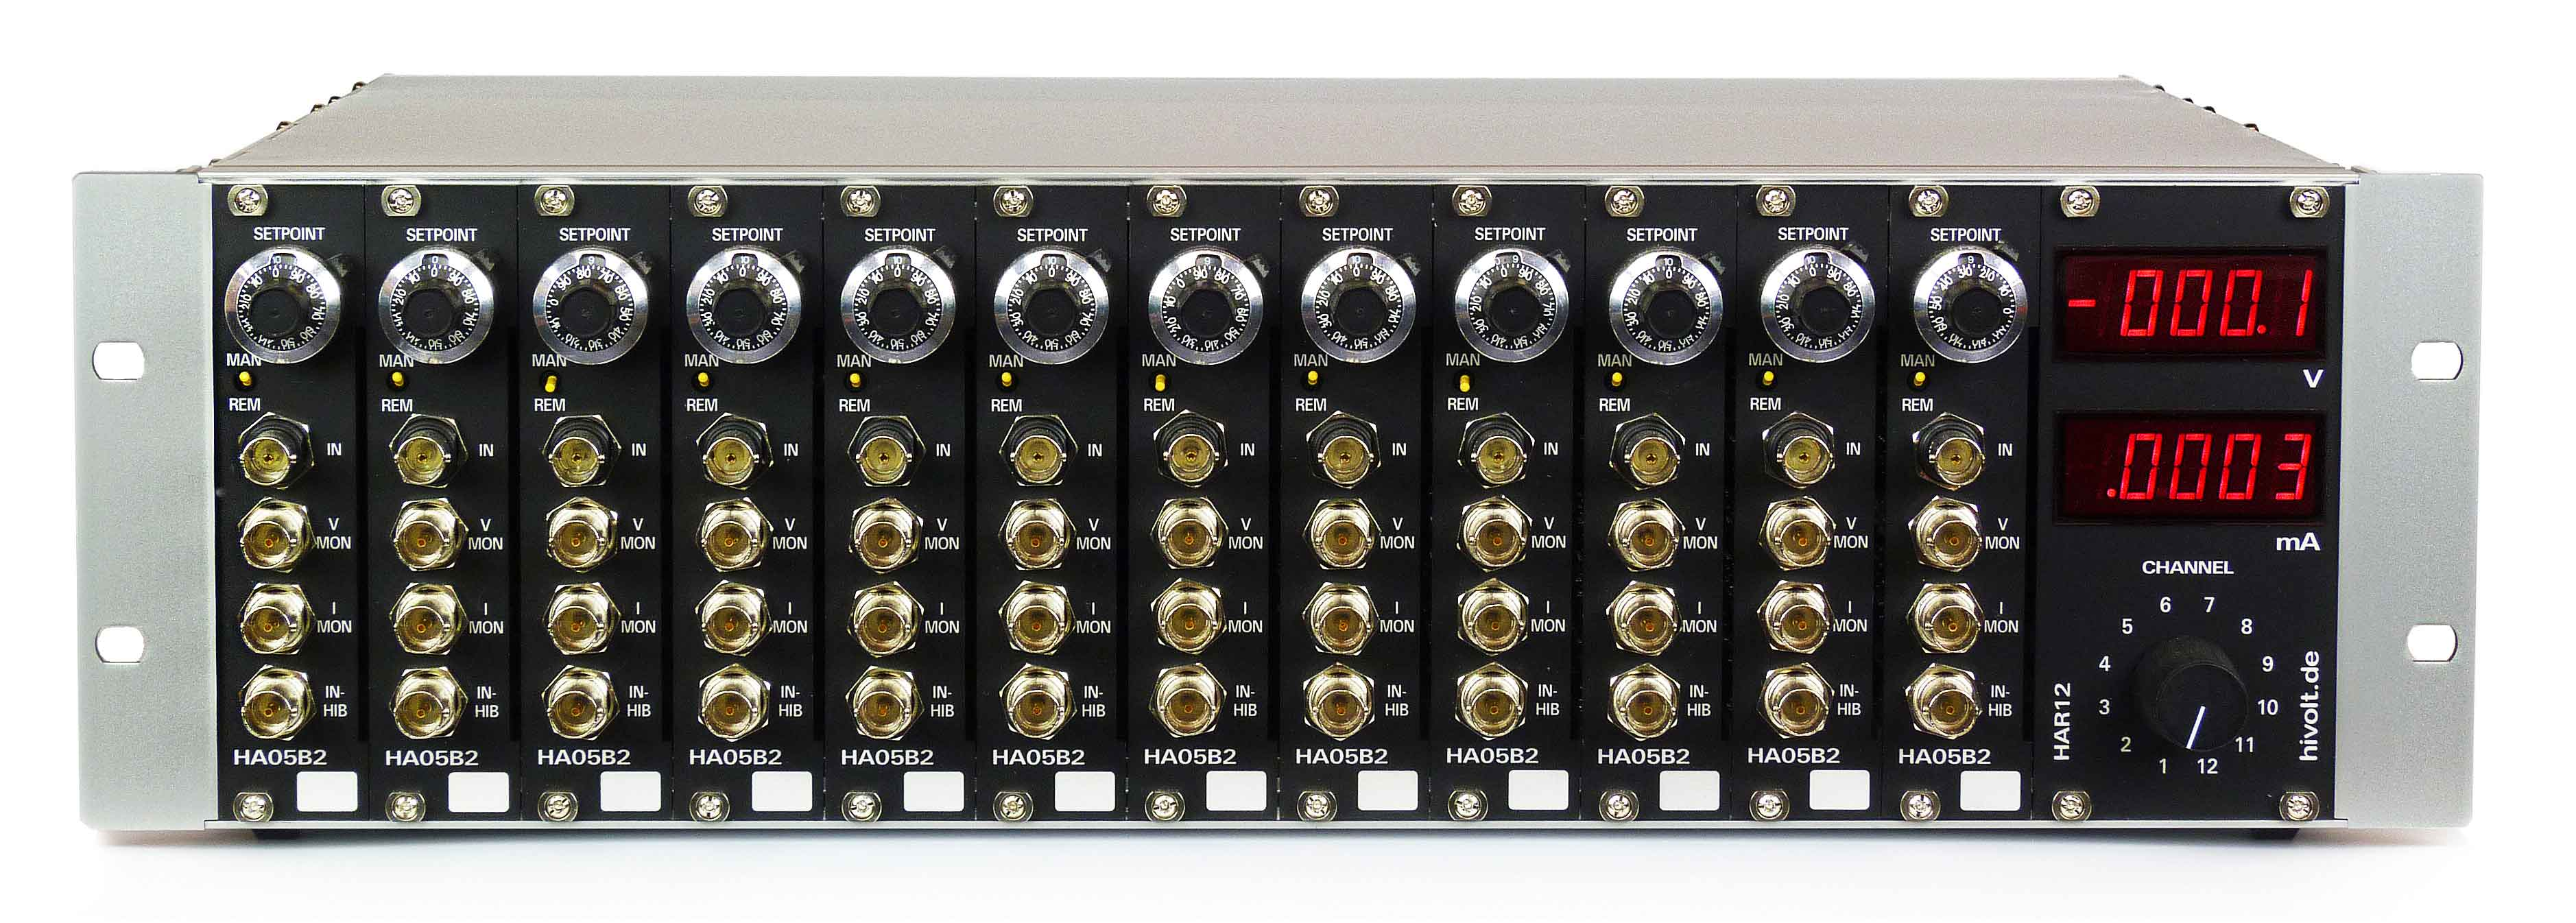 Amplificateur haute tension HAR12 multivoies 12 voies chassis rack standard reglage potentiometre affichage digital du courant Hivolt.de